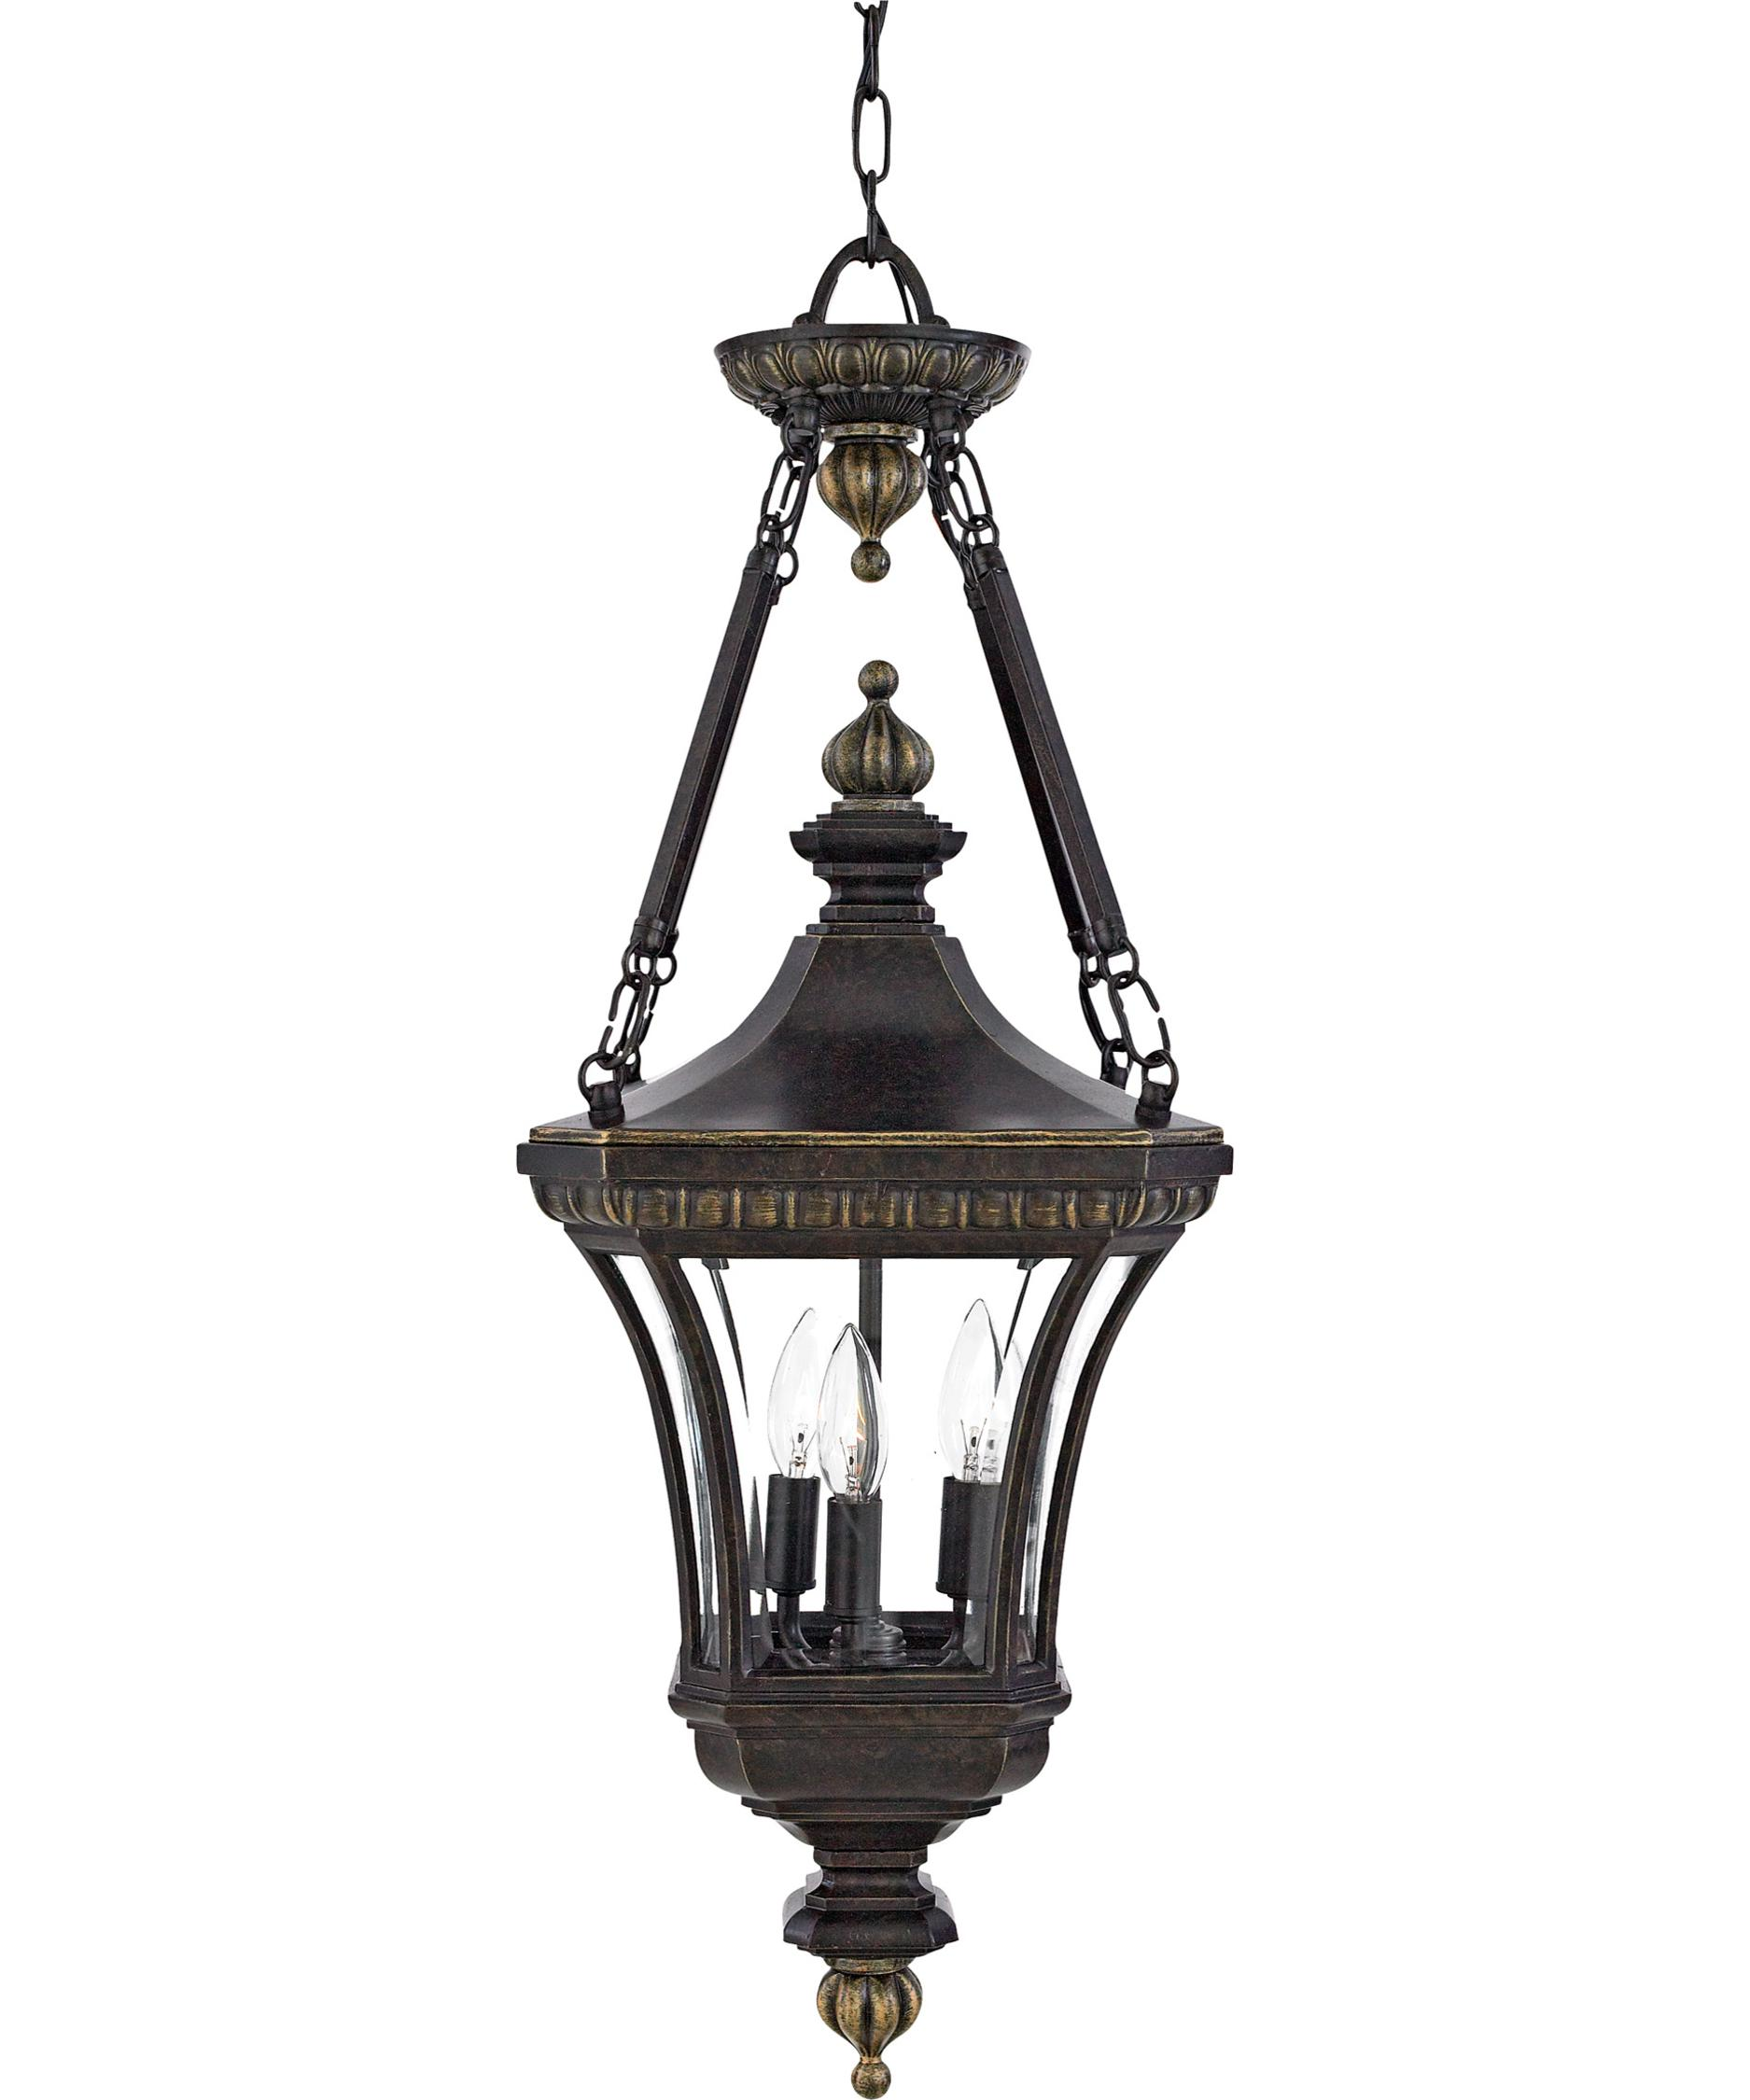 Outdoor hanging lamp - Shown In Imperial Bronze Finish And Clear Beveled Glass